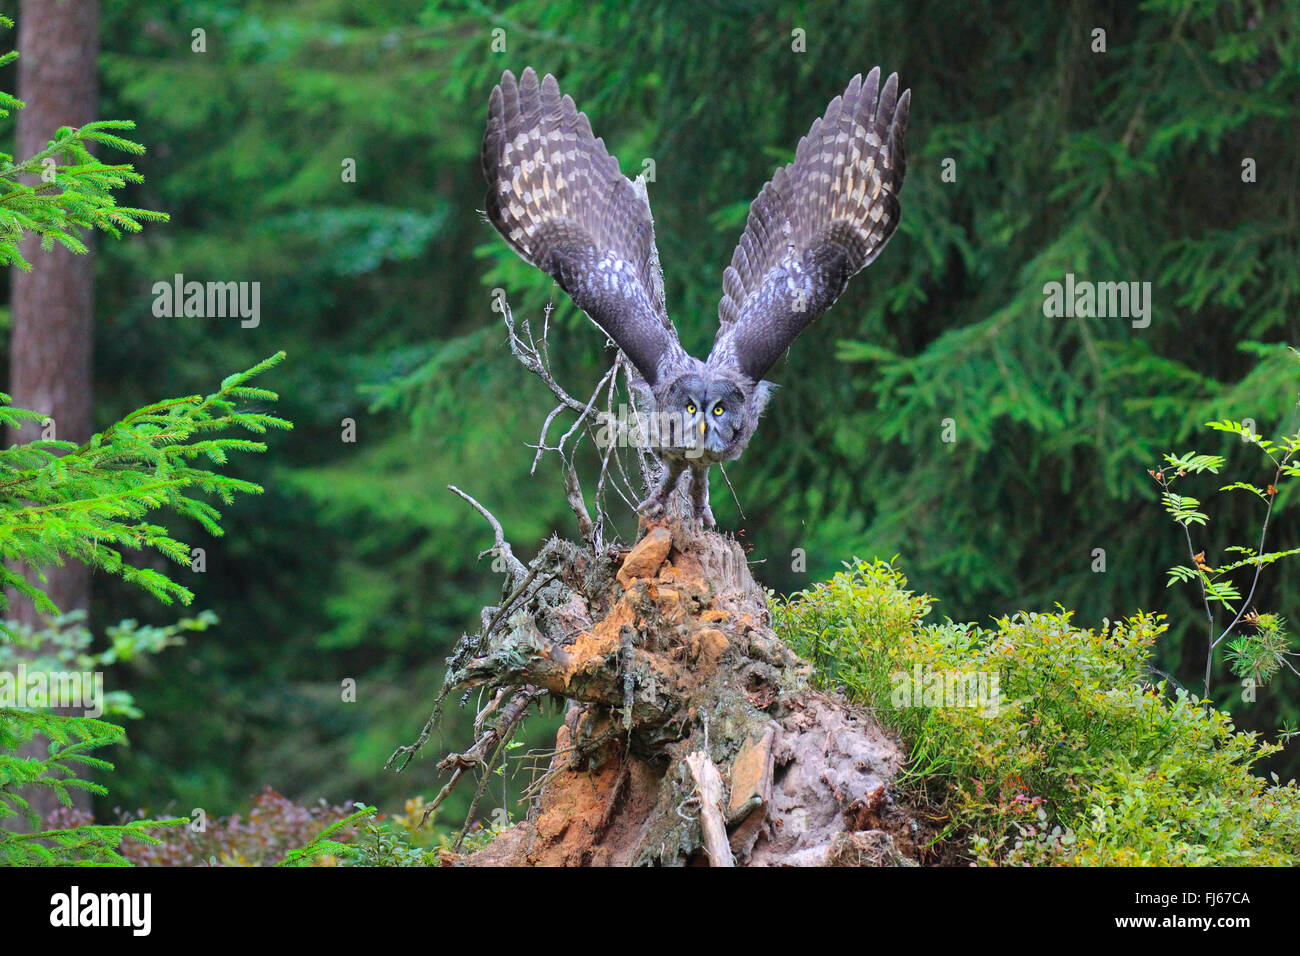 great grey owl (Strix nebulosa), in flight in forest, Germany - Stock Image